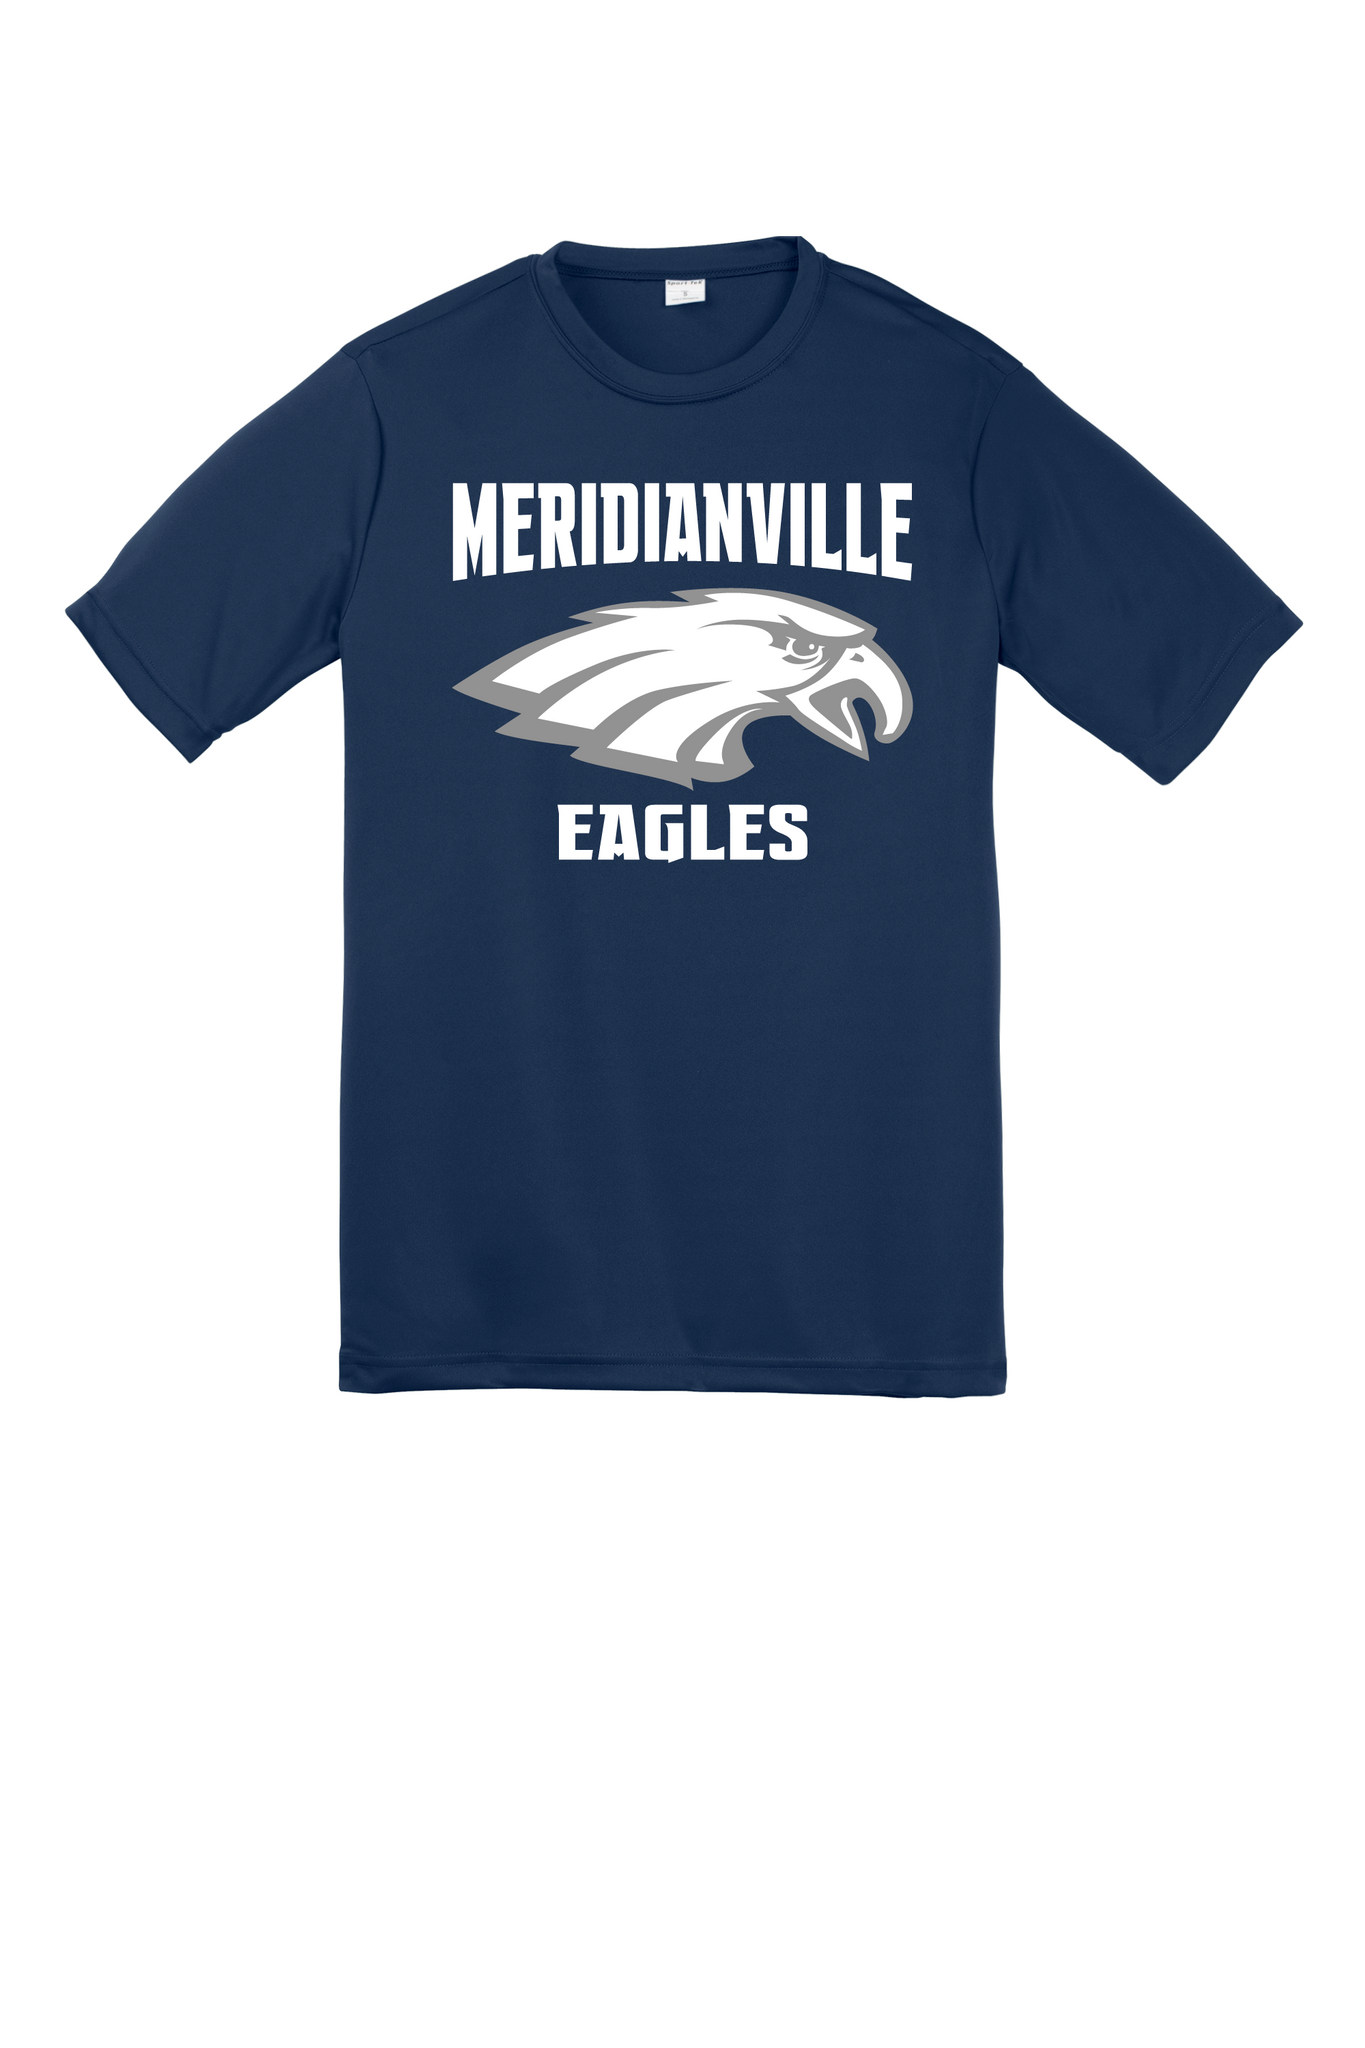 Cotton t-shirt for the family - Meridianville Eagles with NAME and NUMBER on back